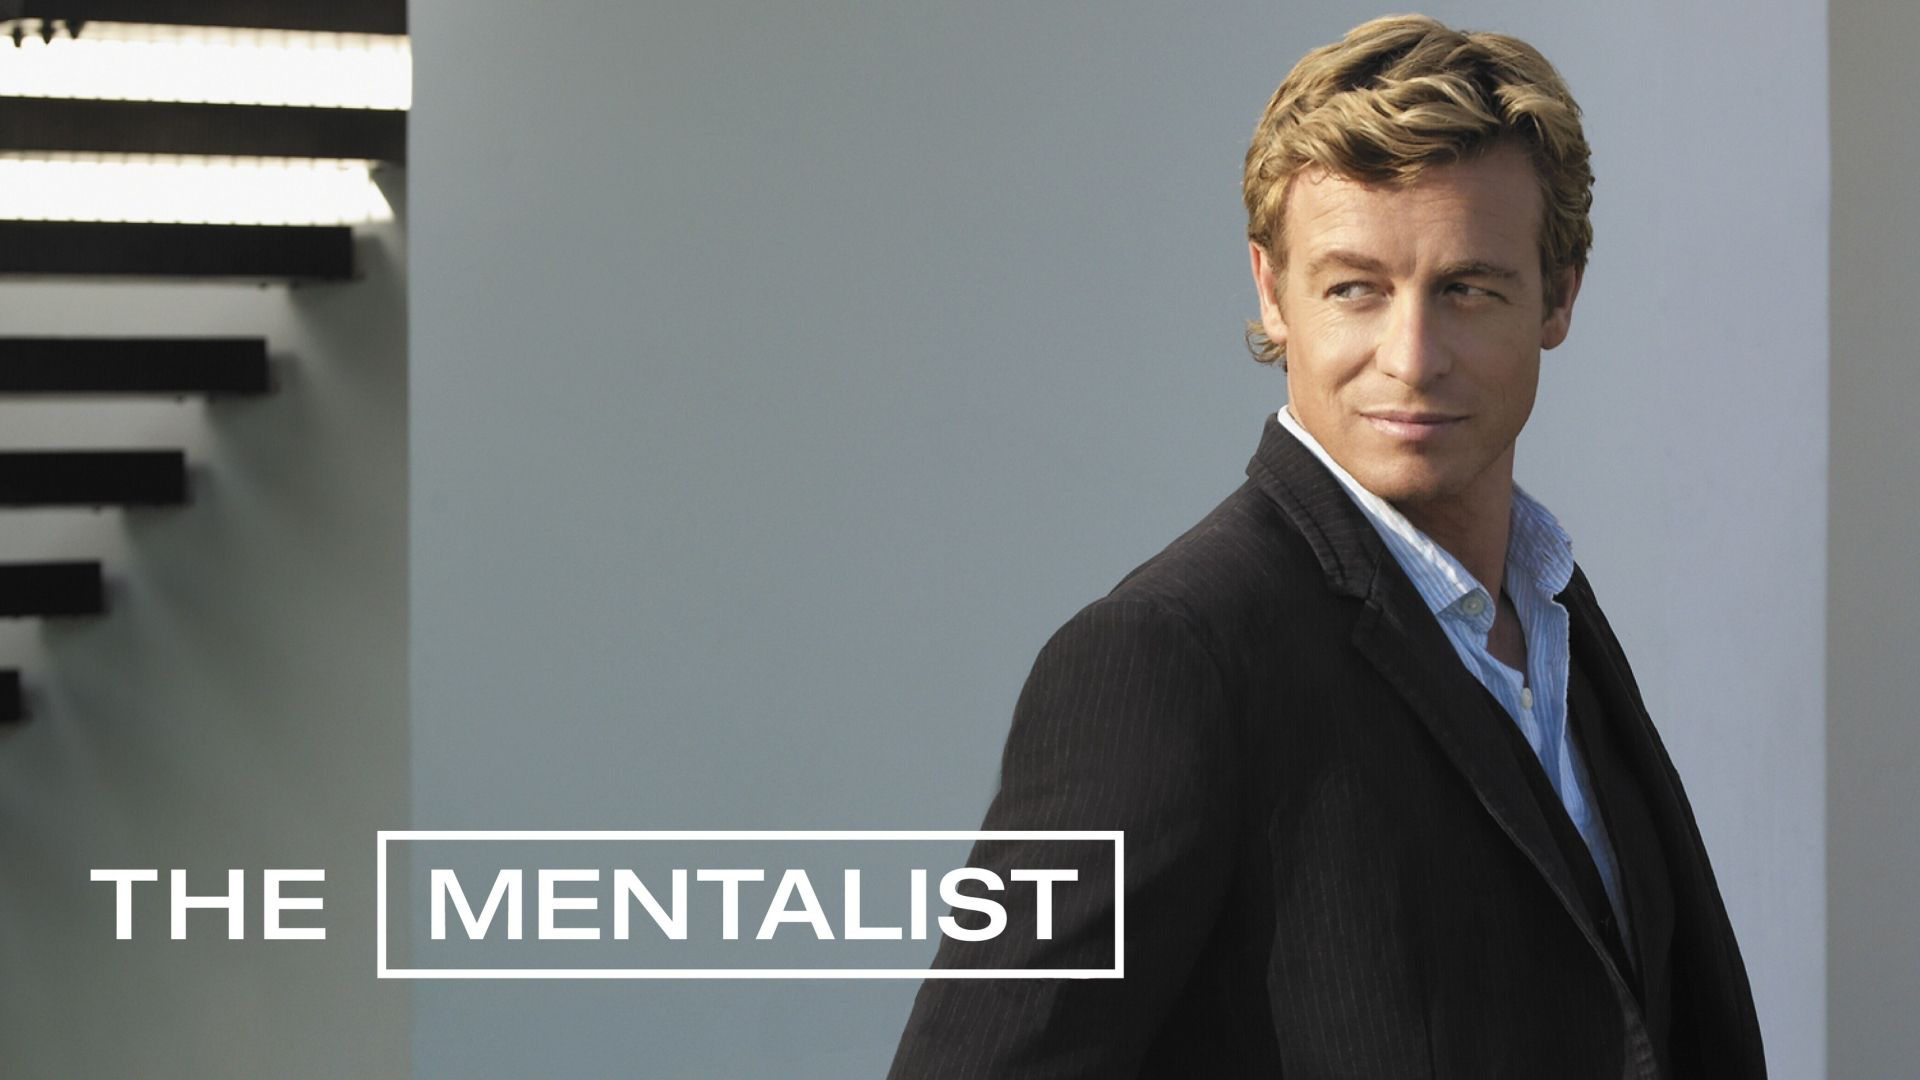 The Mentalist tv series hbo tv series new tv series comedy netflix and chill tv series